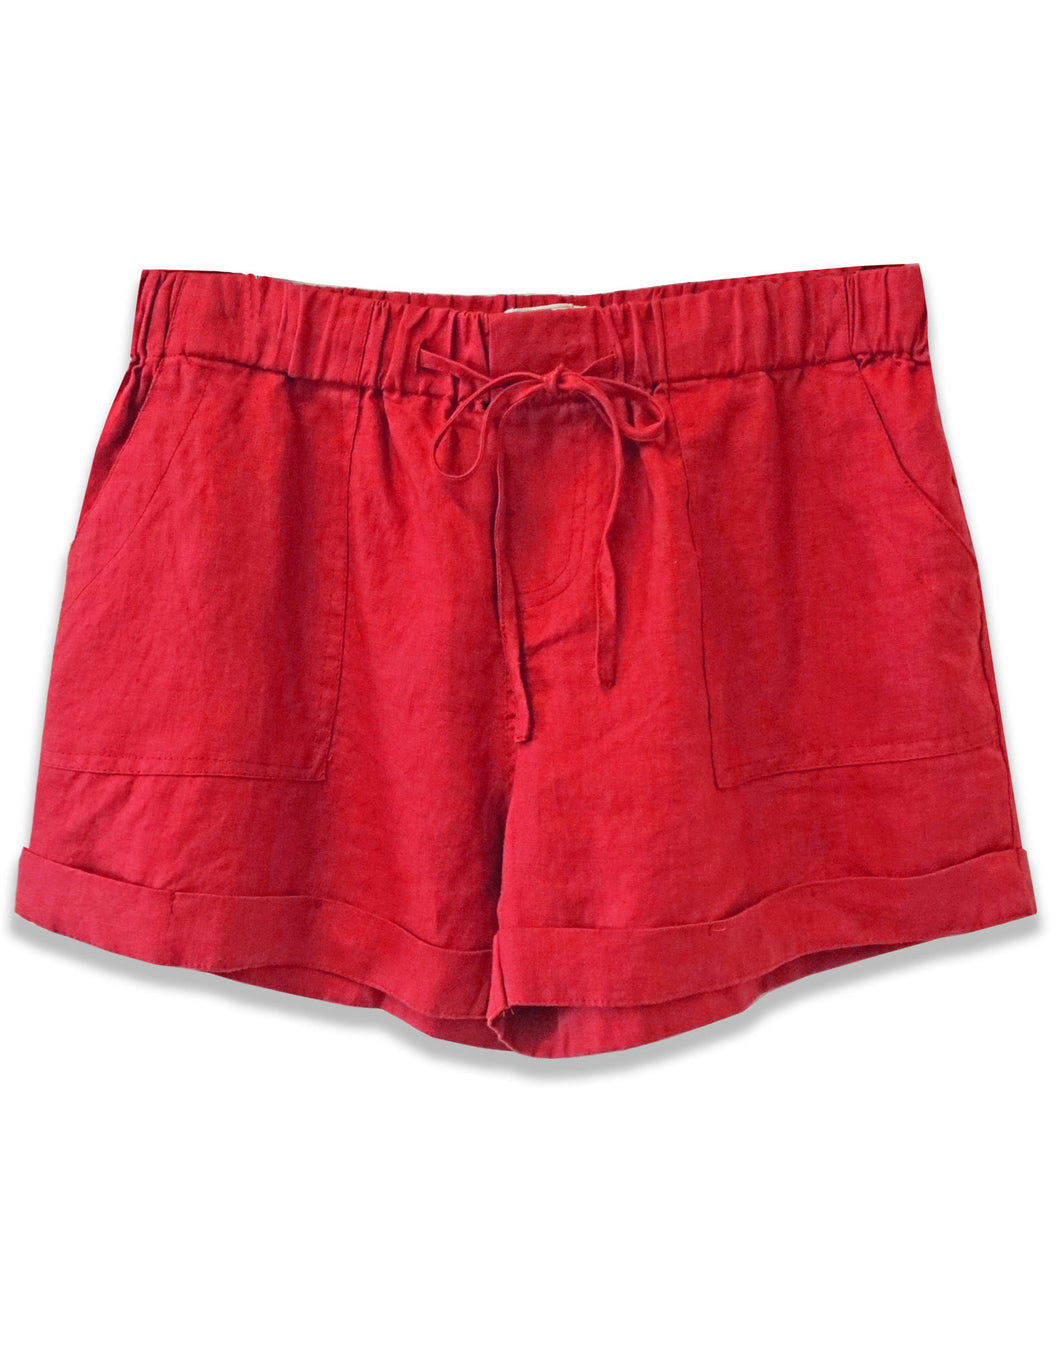 Linen Drawstring Short | Chili - 4our Dreamers